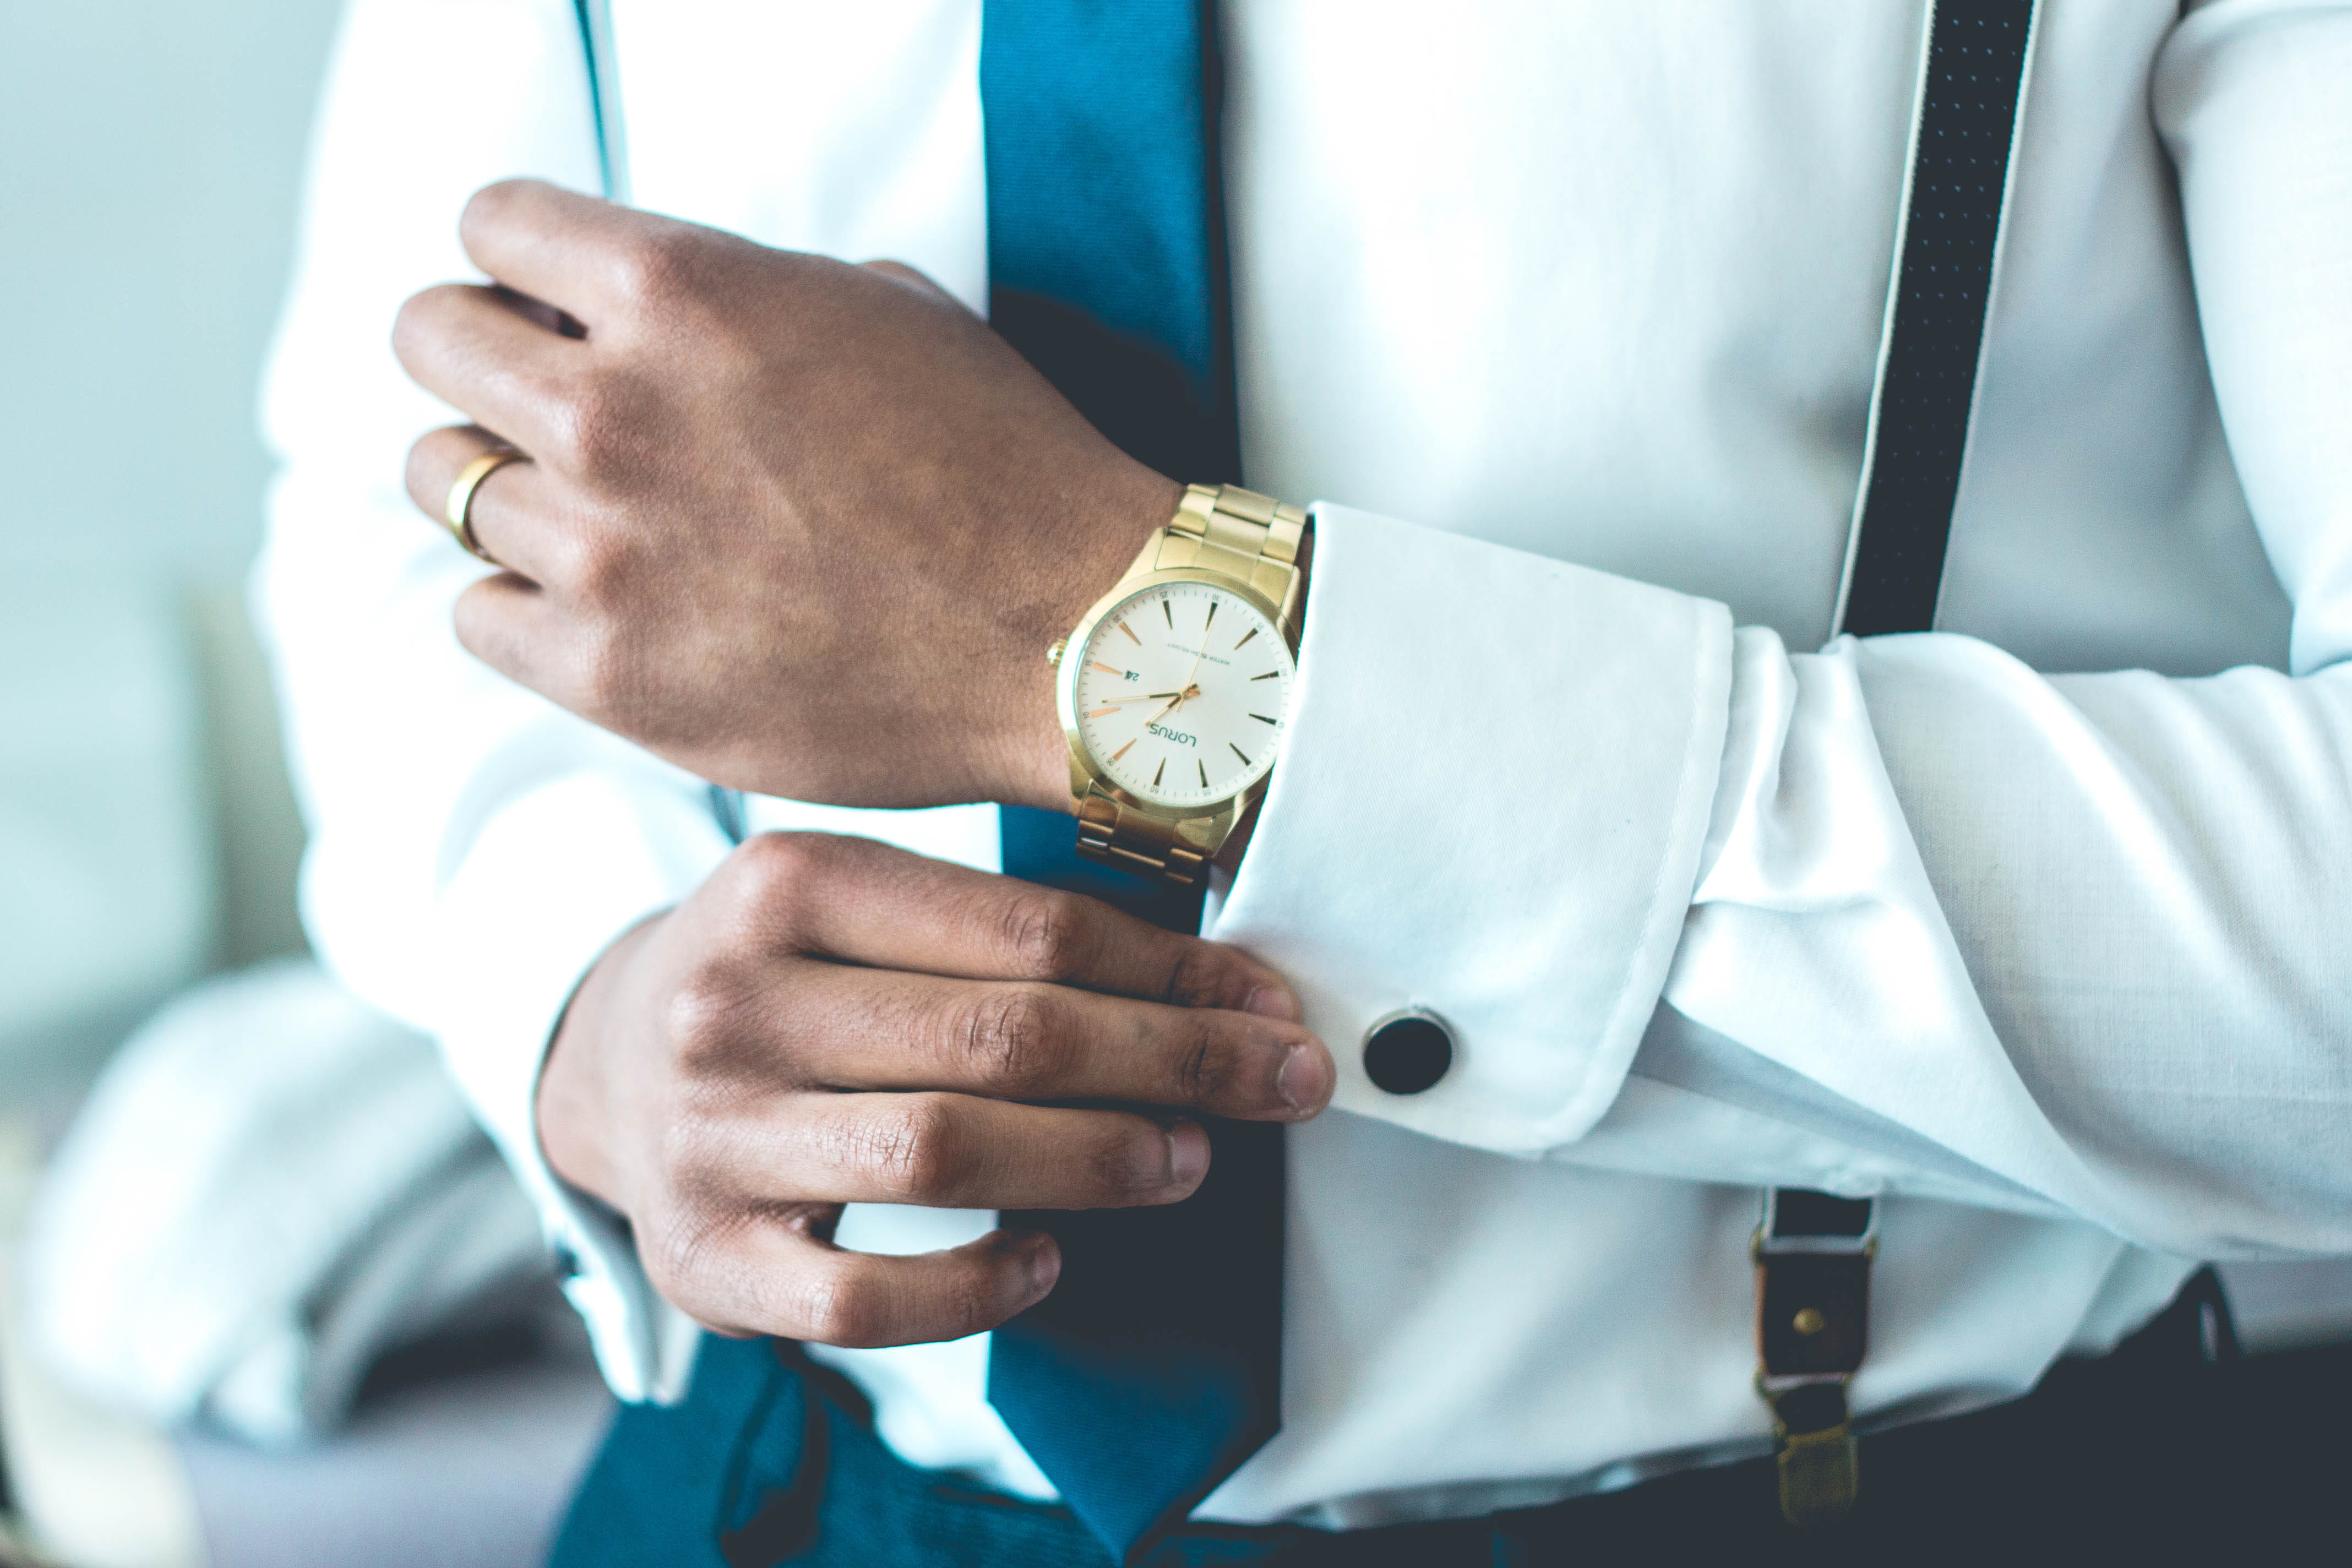 10 Best Watches for Professionals 2020 (Review)